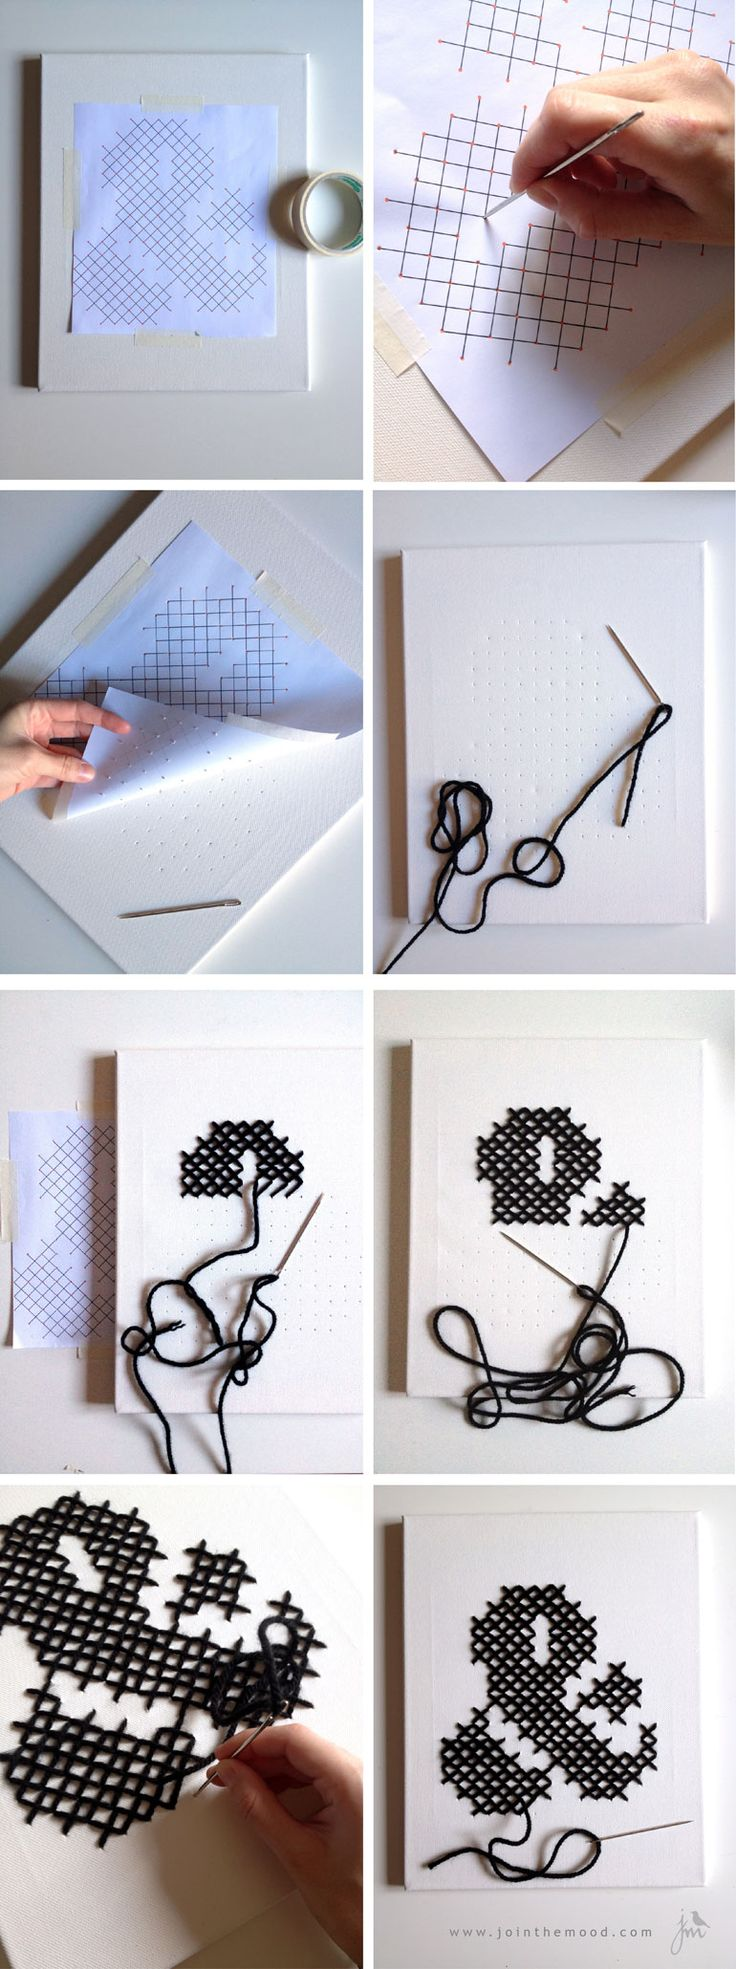 Ampersand Frame In Cross Stitch / Cuadro De Ampersand En Punto De Cruz